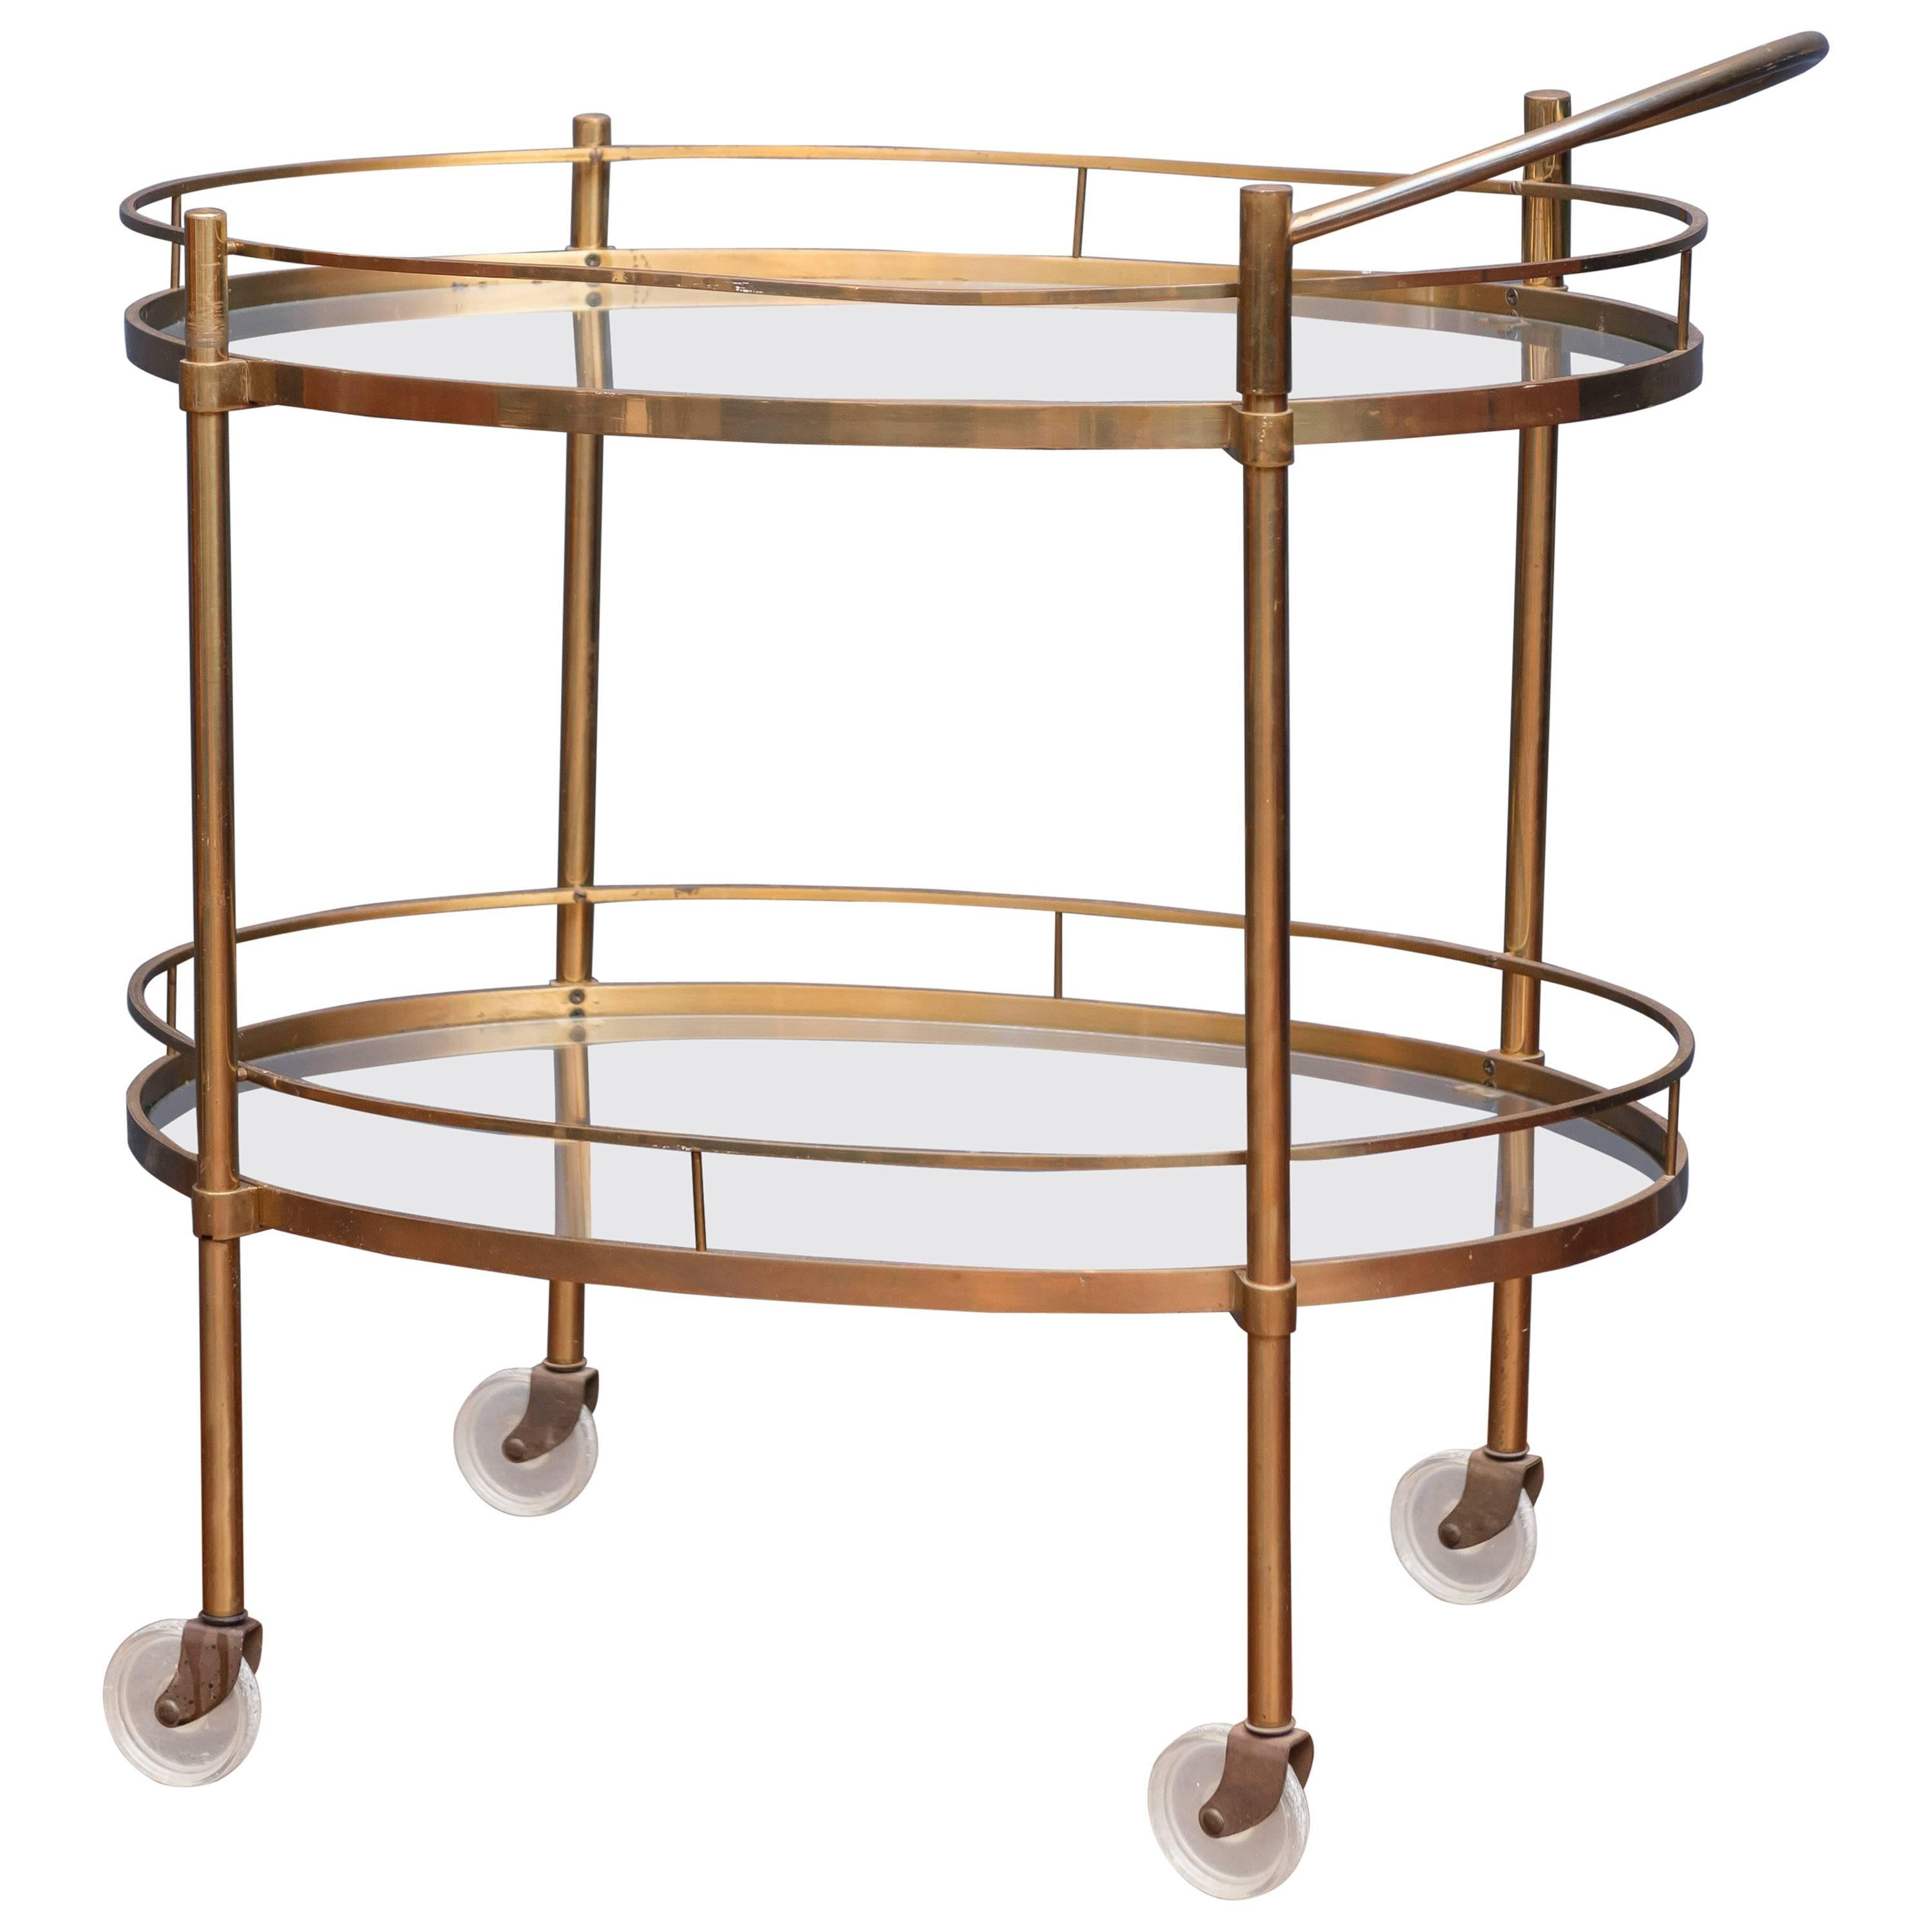 a midcentury hollywood regency brass bar cart with wine hold